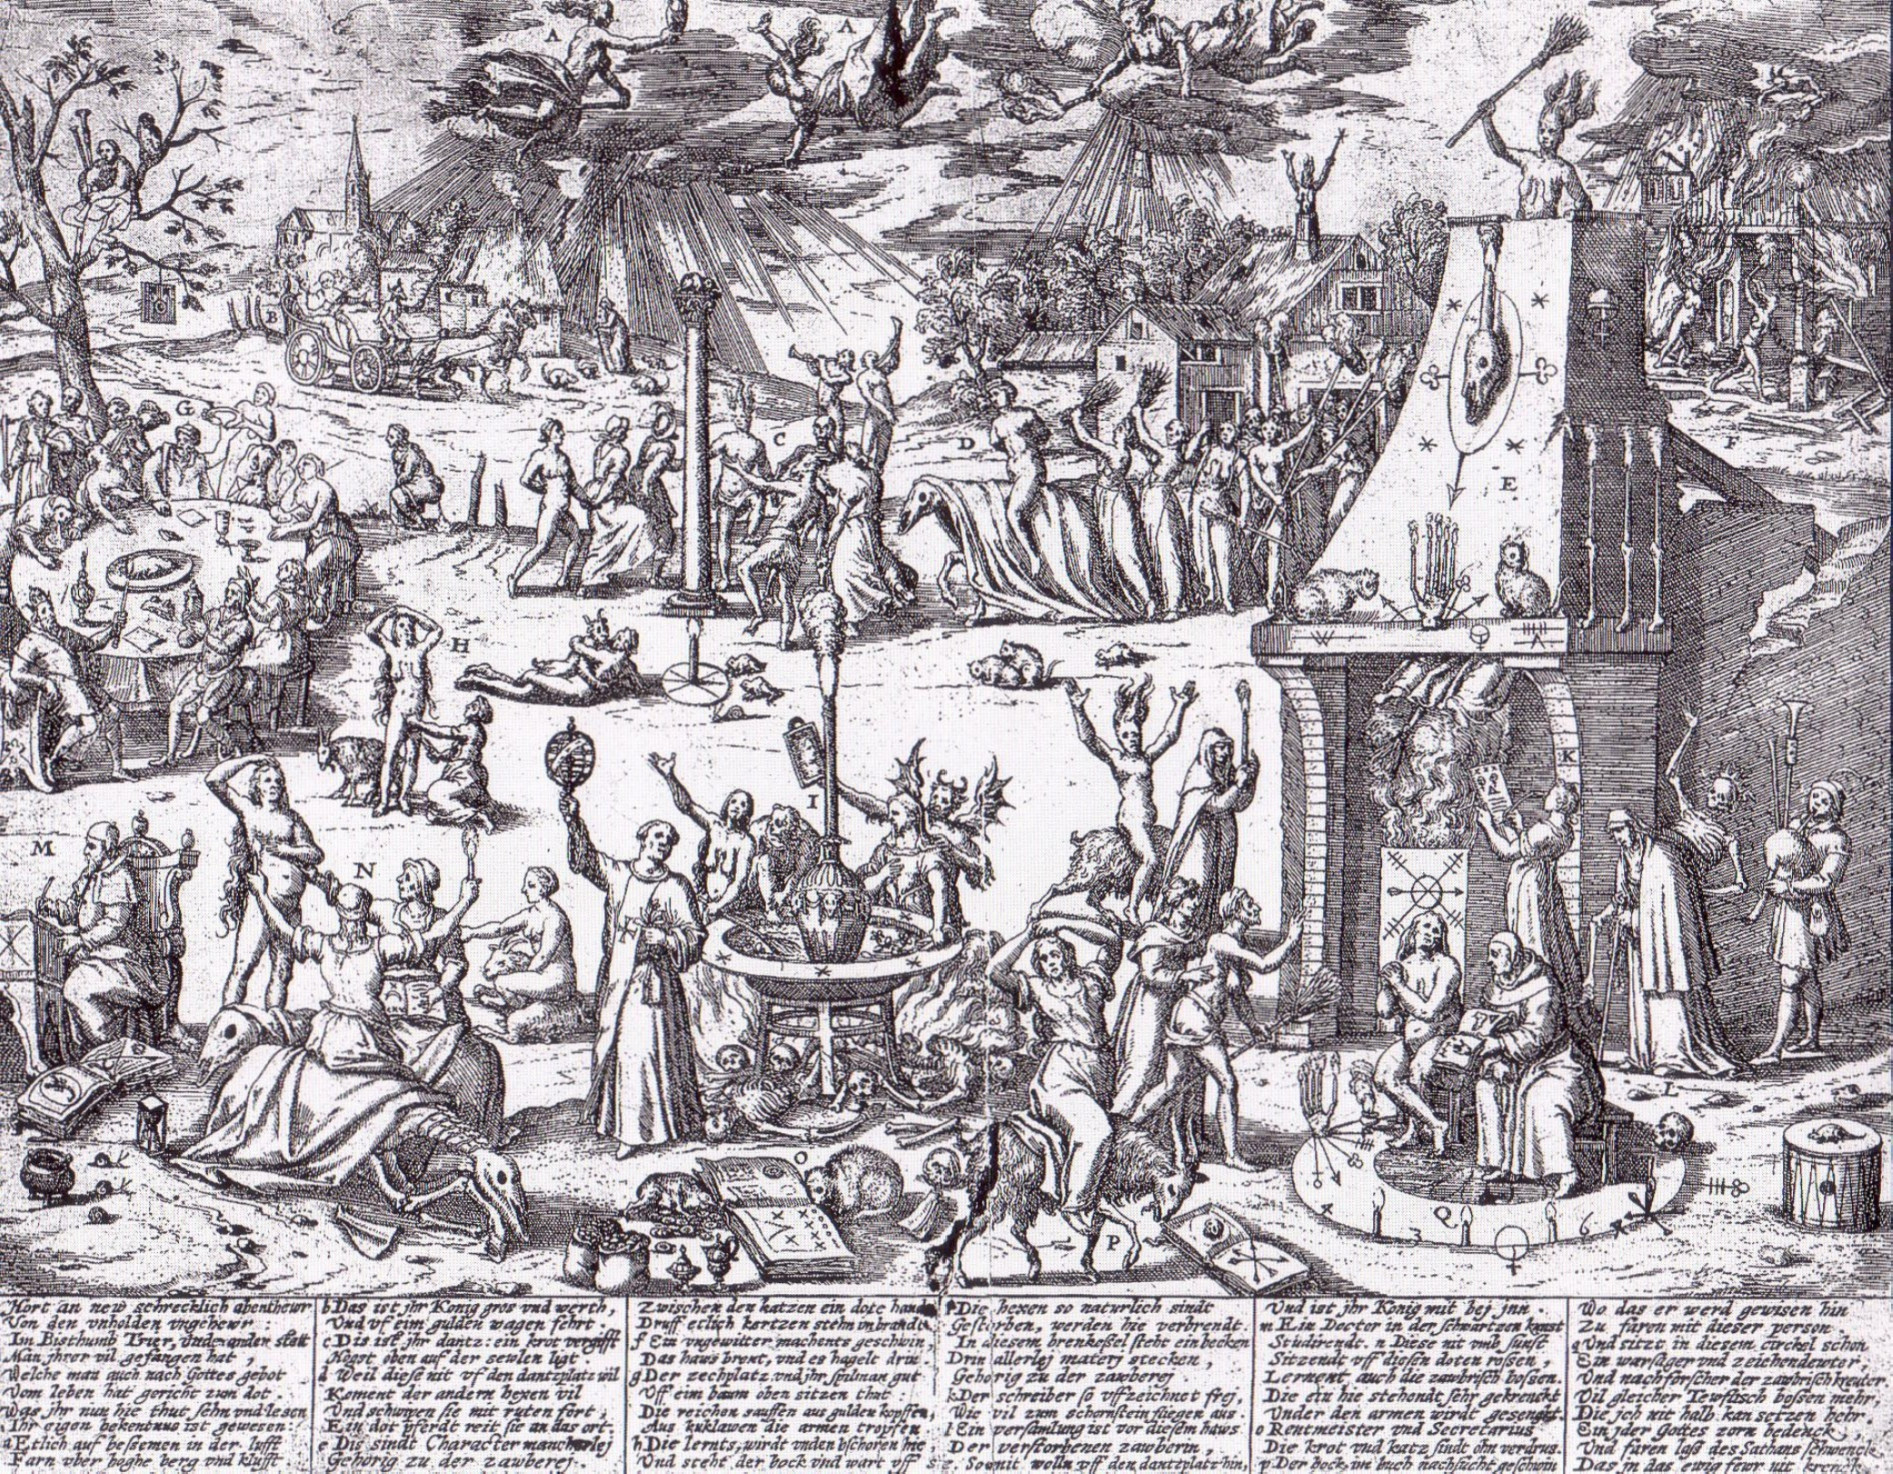 Trier witch trials - Wikipedia